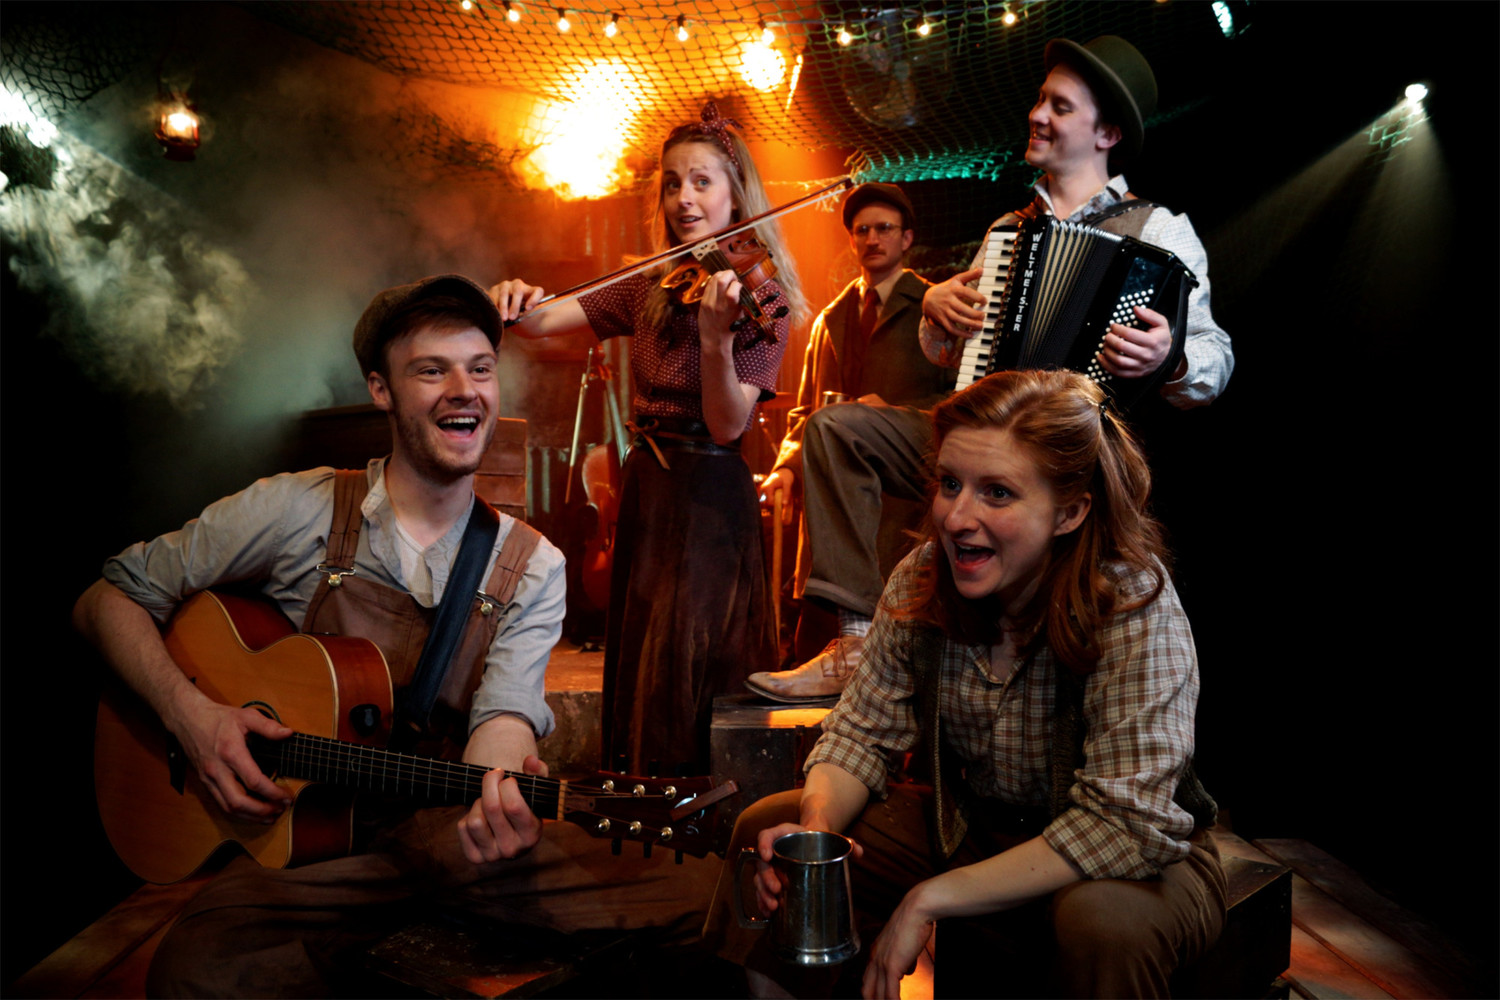 BWW Review: THE CURIOUS CASE OF BENJAMIN BUTTON, Southwark Playhouse